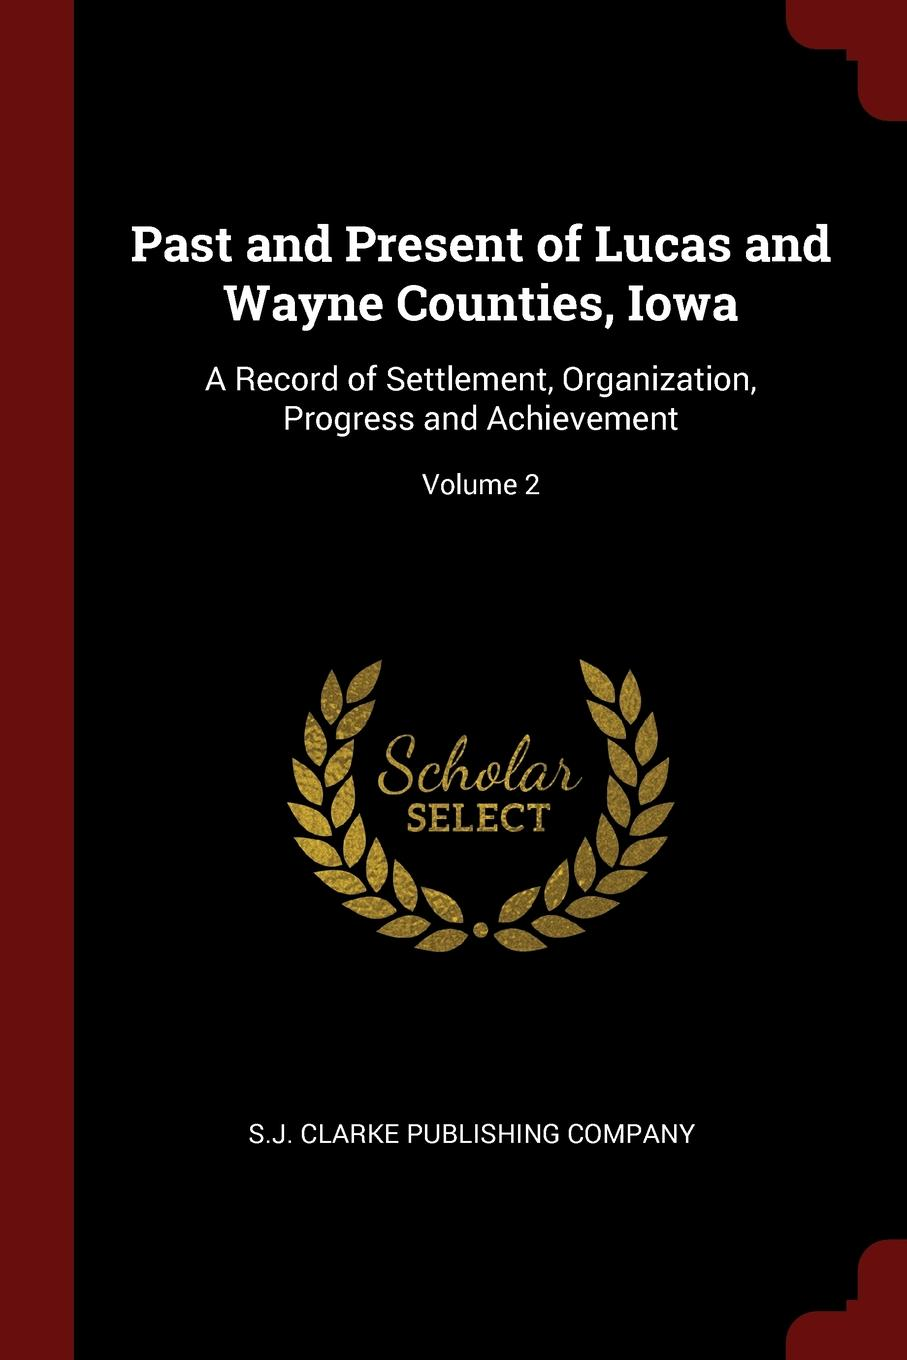 Past and Present of Lucas and Wayne Counties, Iowa. A Record of Settlement, Organization, Progress and Achievement; Volume 2.